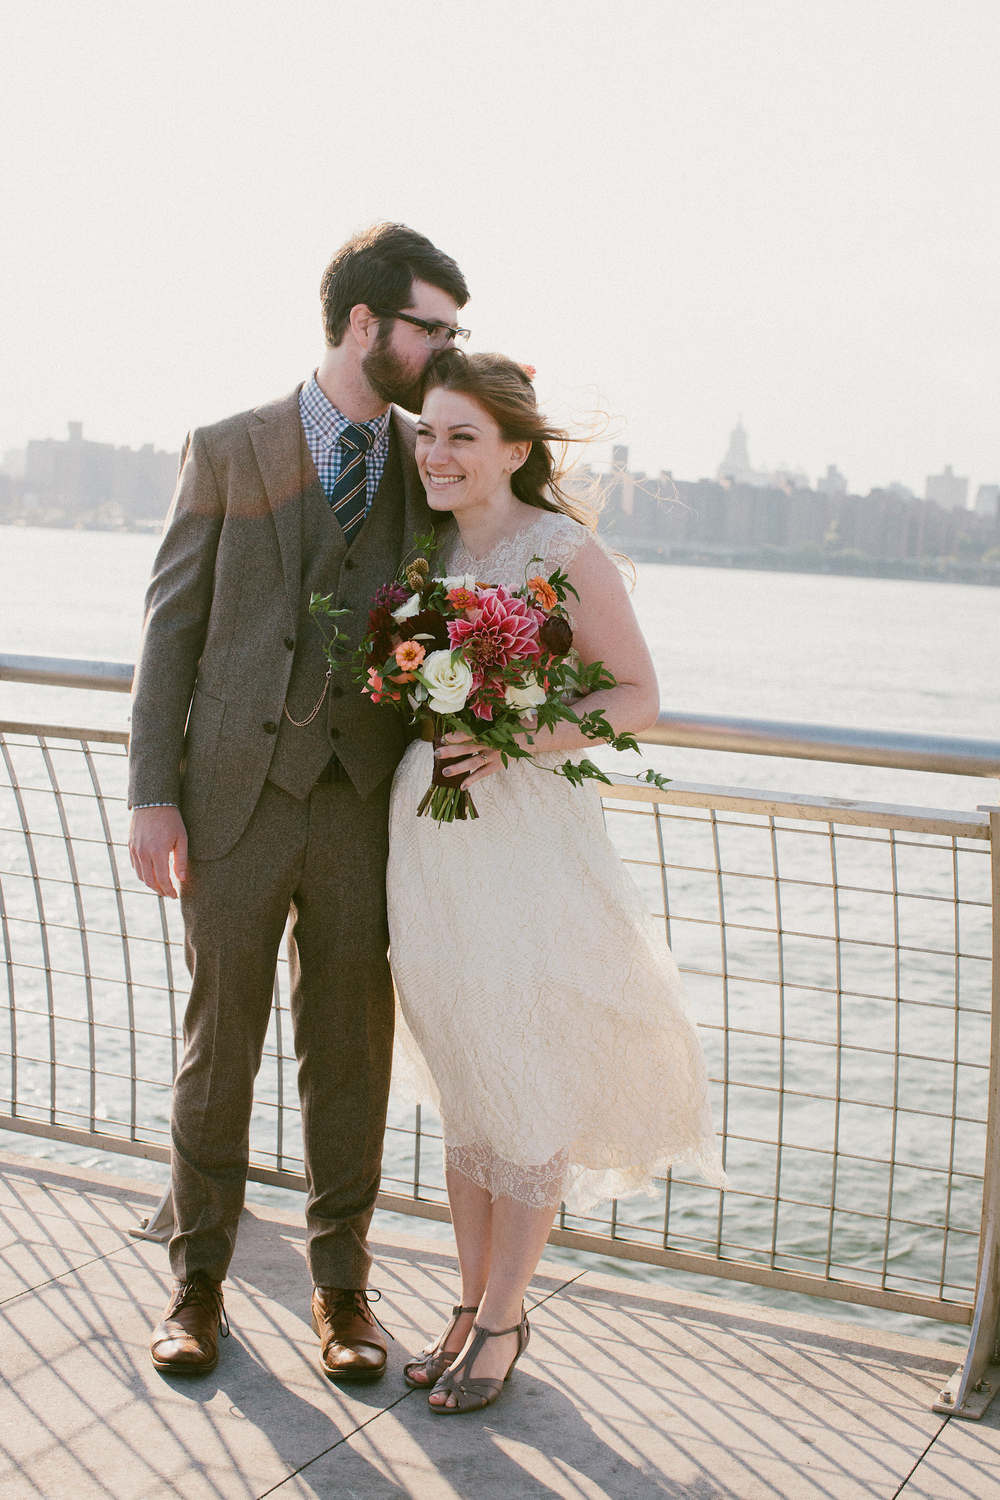 Full Aperture Floral & Corey Torpie Photography  - Brooklyn Wedding - 52.jpeg